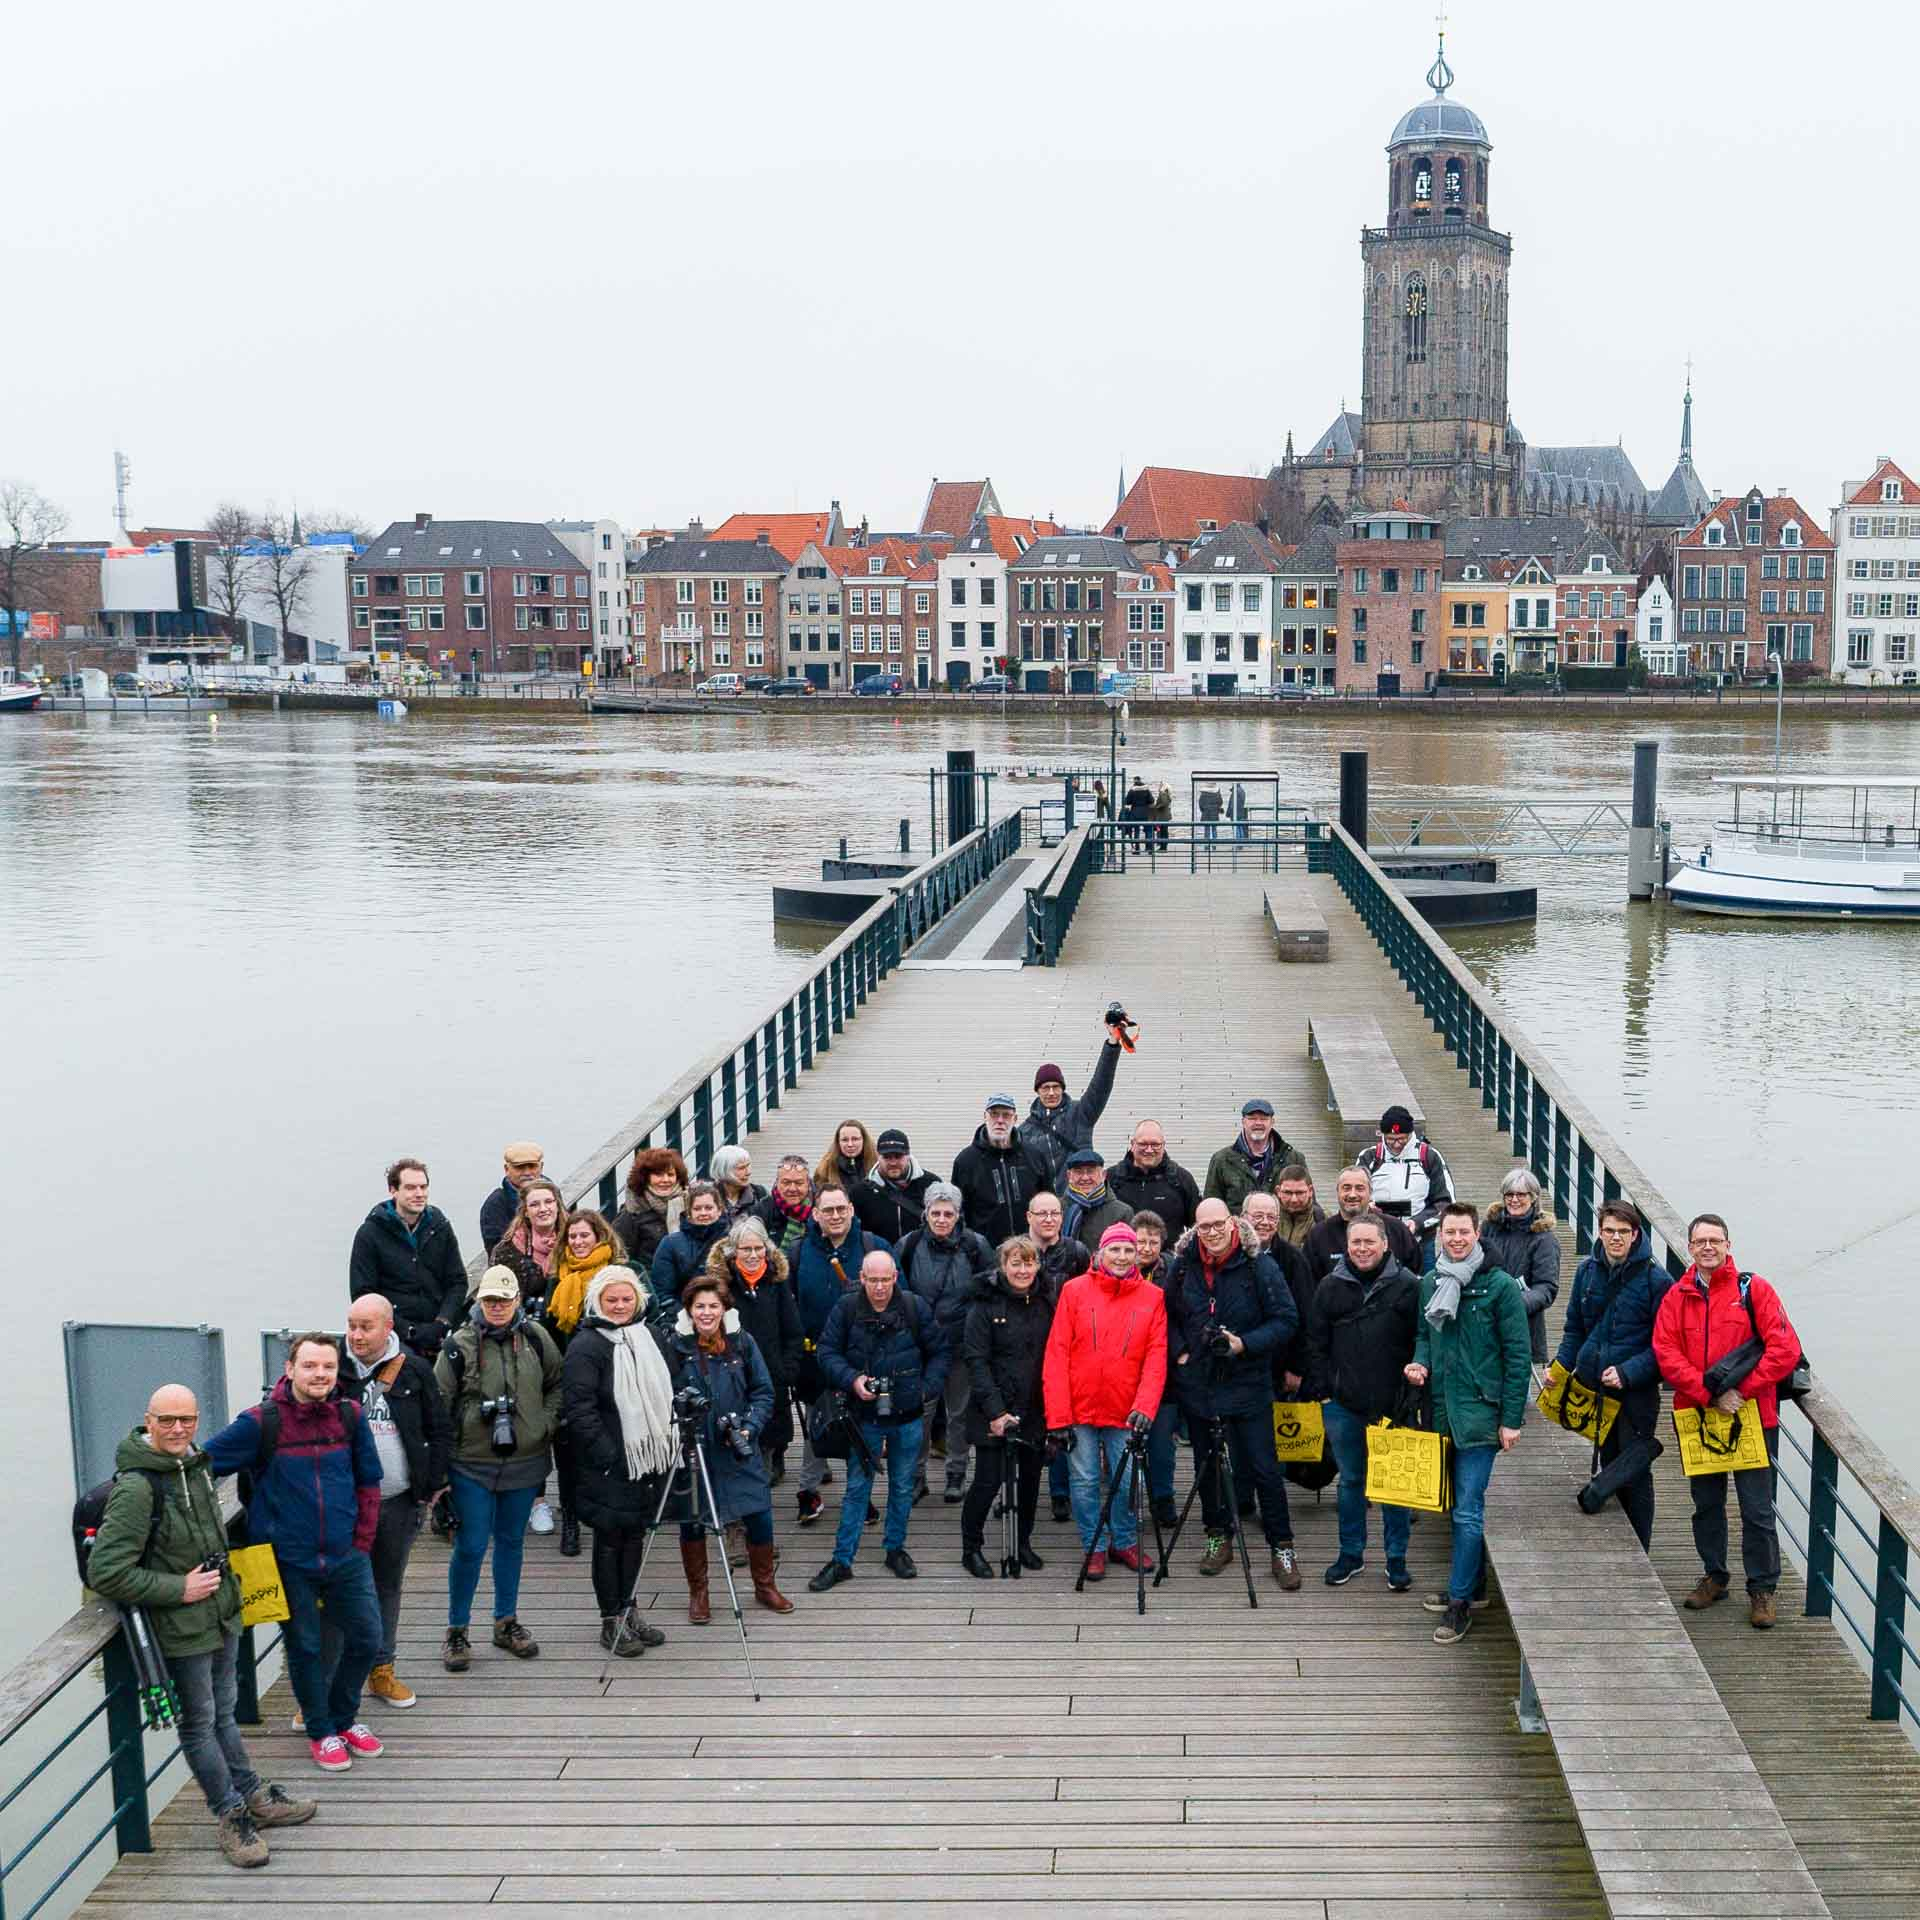 Photowalk Deventer